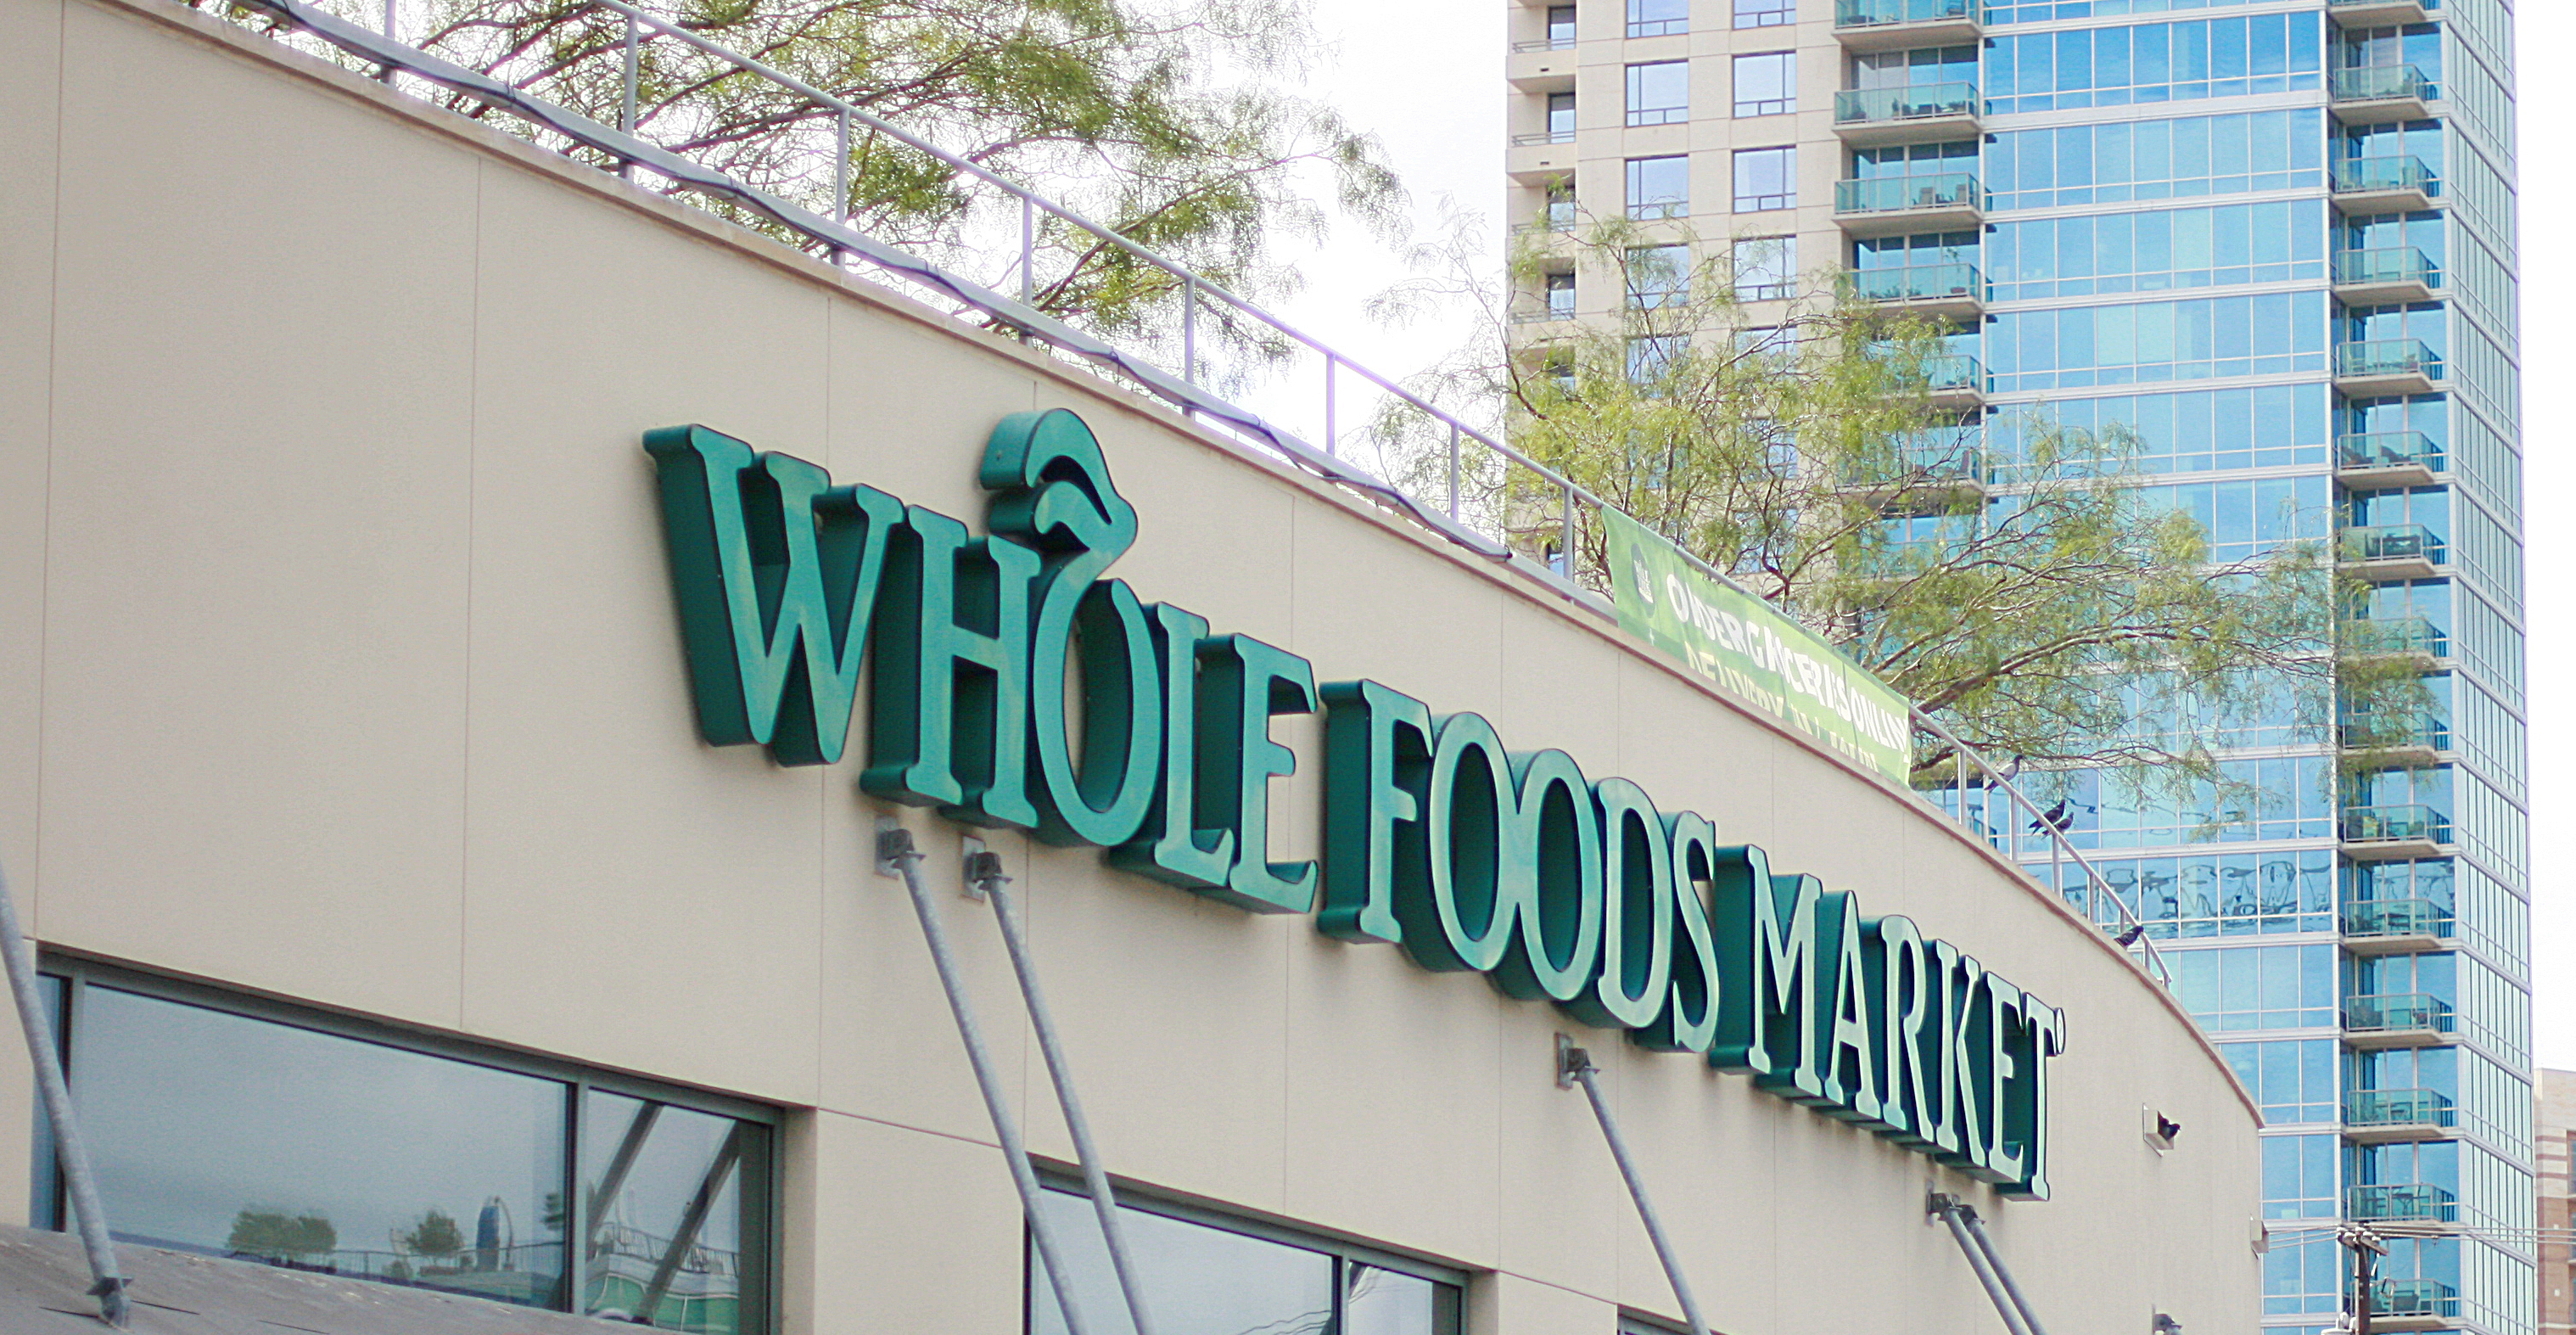 Whole Foods Market in Austin recently began using Instacart for grocery delivery. Instacart began two years ago in San Francisco and now has national scope with all Whole Foods Market locations. Photo by Silvana Di Ravenna.